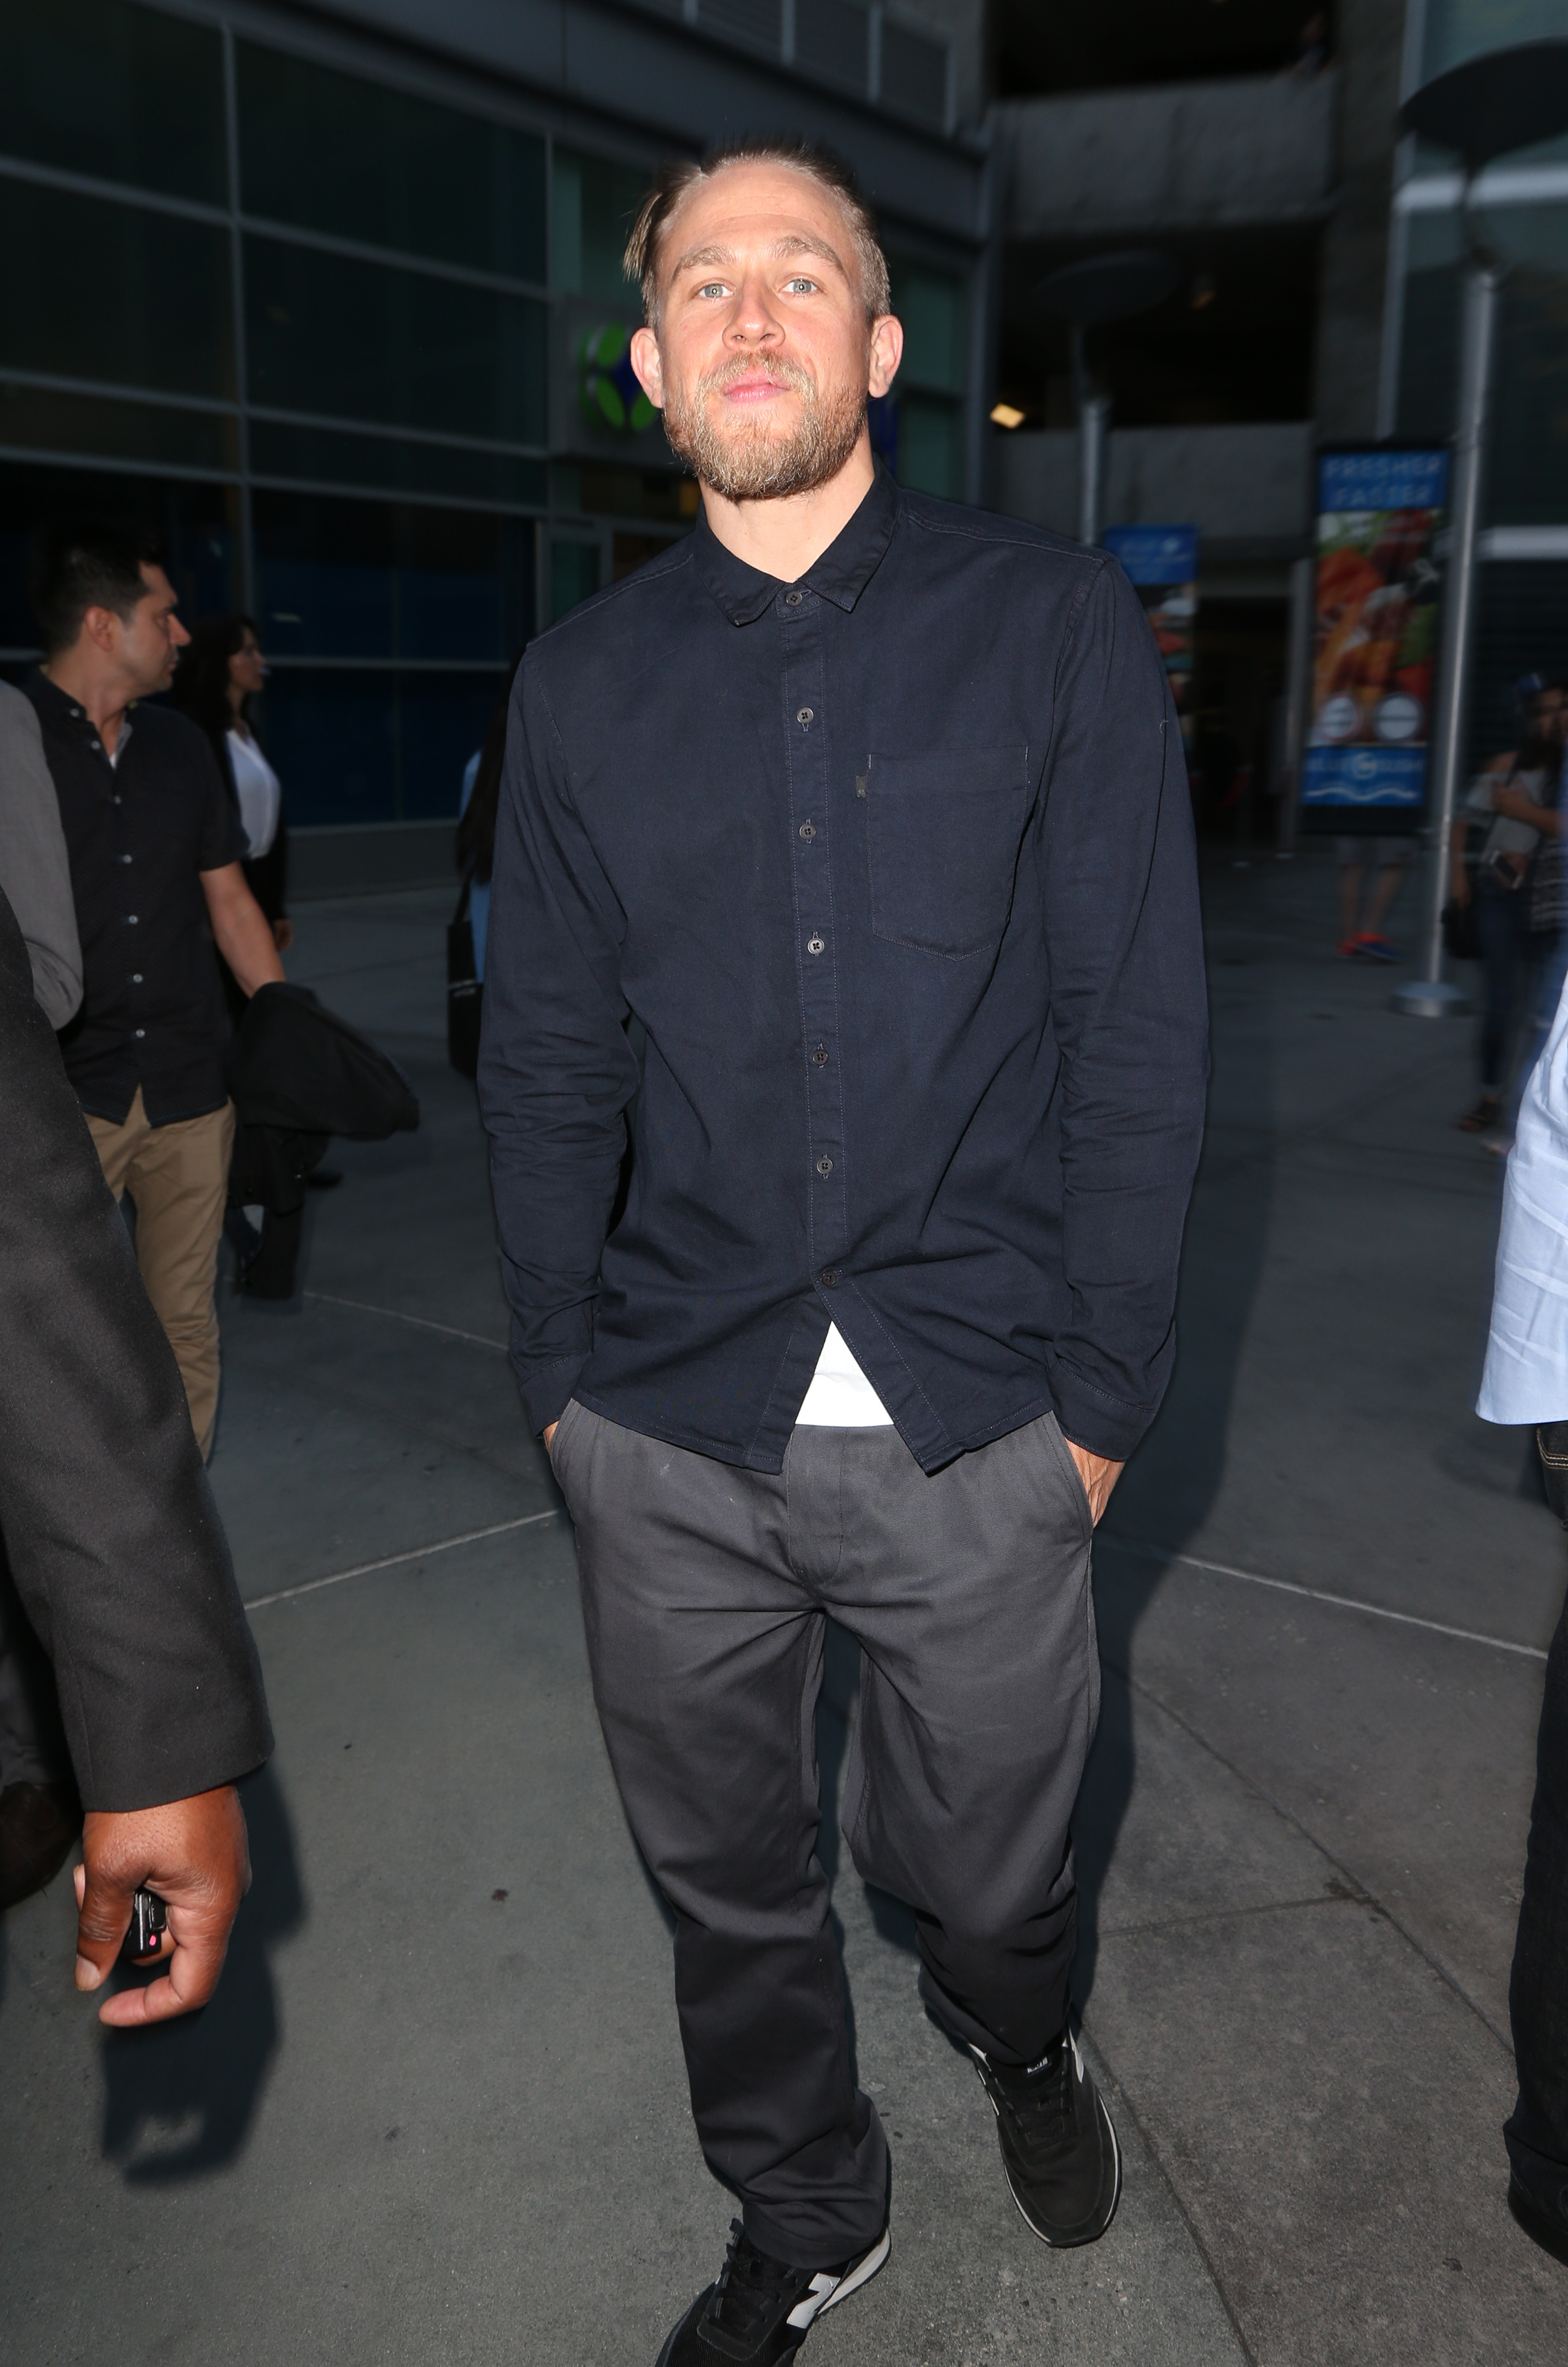 Charlie Hunnam might never see 'Fifty Shades'